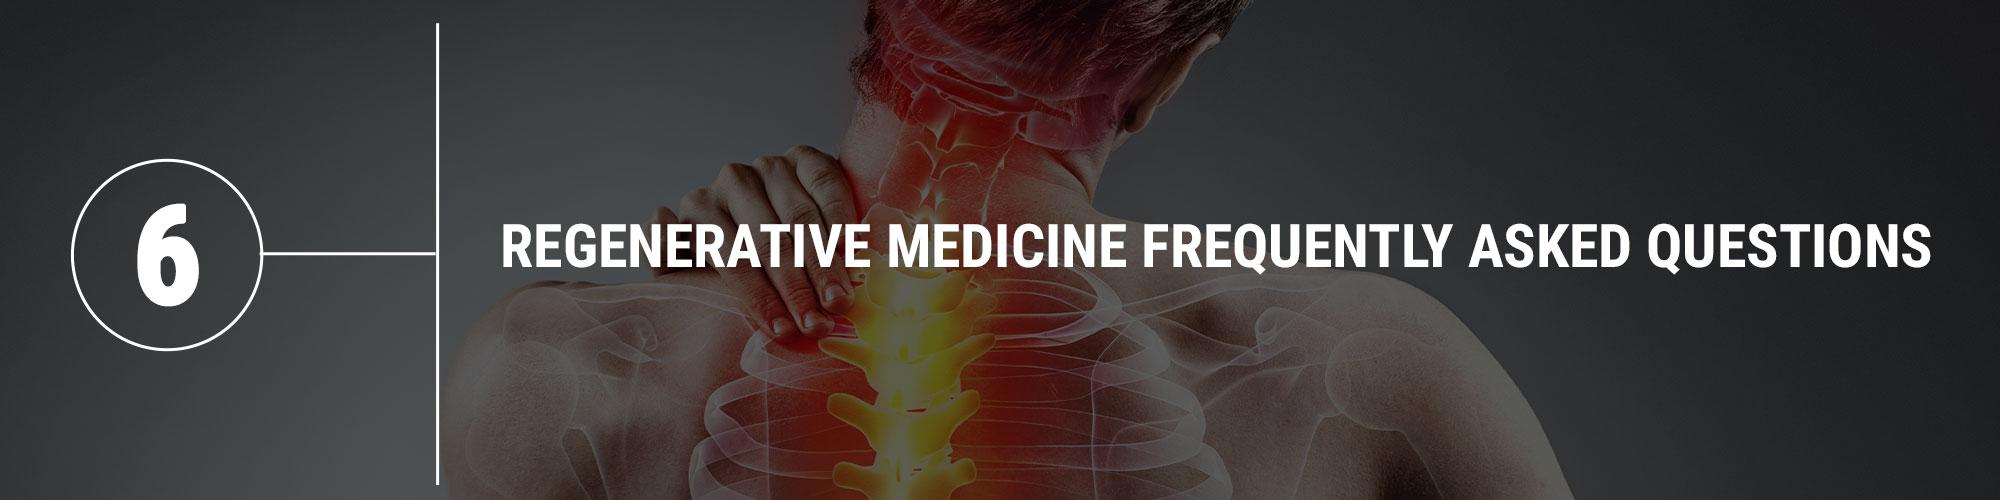 regenerative medicine frequently asked questions